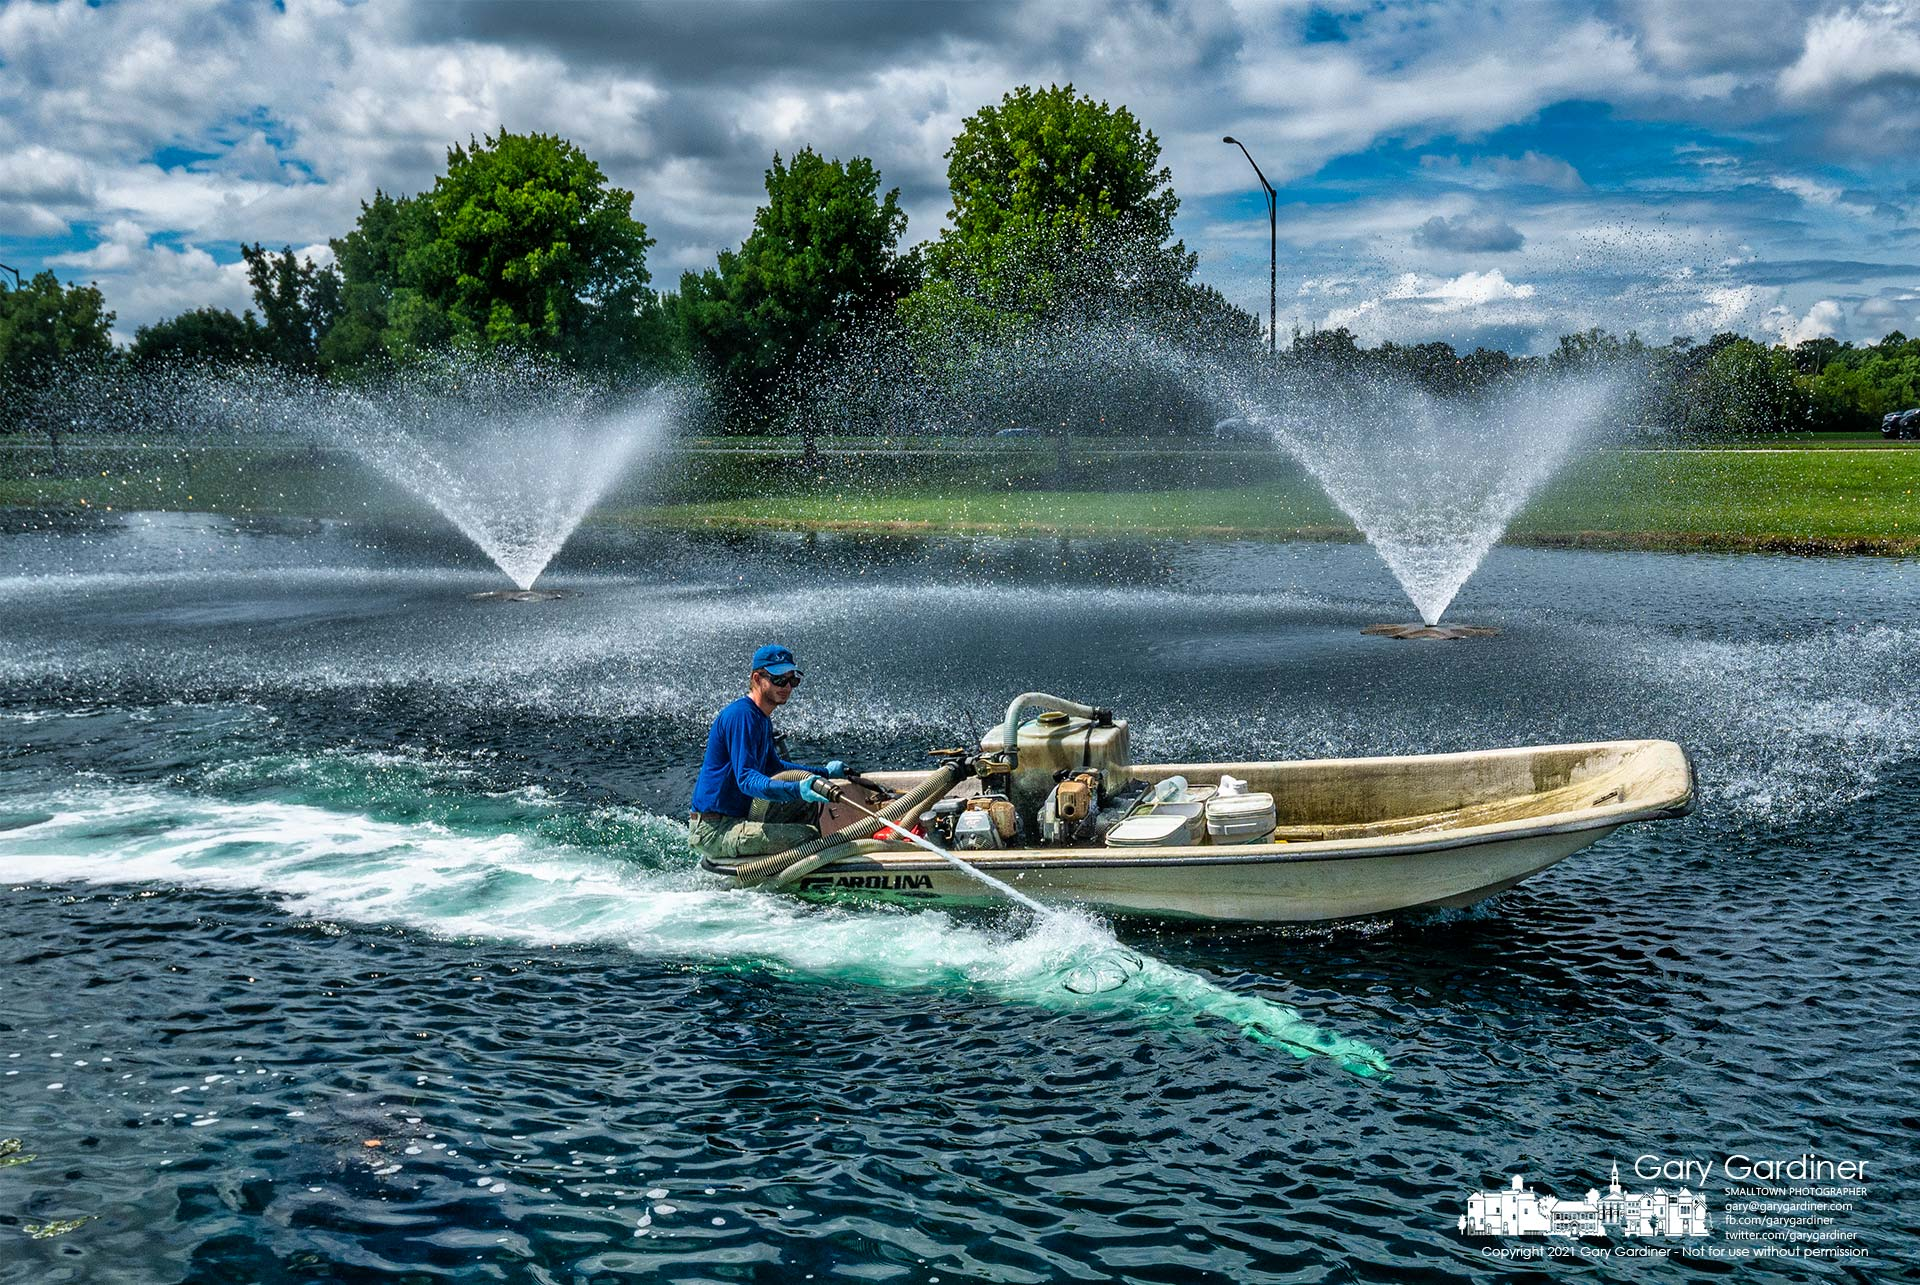 A contractor travels around the pond in front of the Community Center spraying copper sulfate into the water to kill the algae bloom. My Final Photo for Aug. 18, 2021.